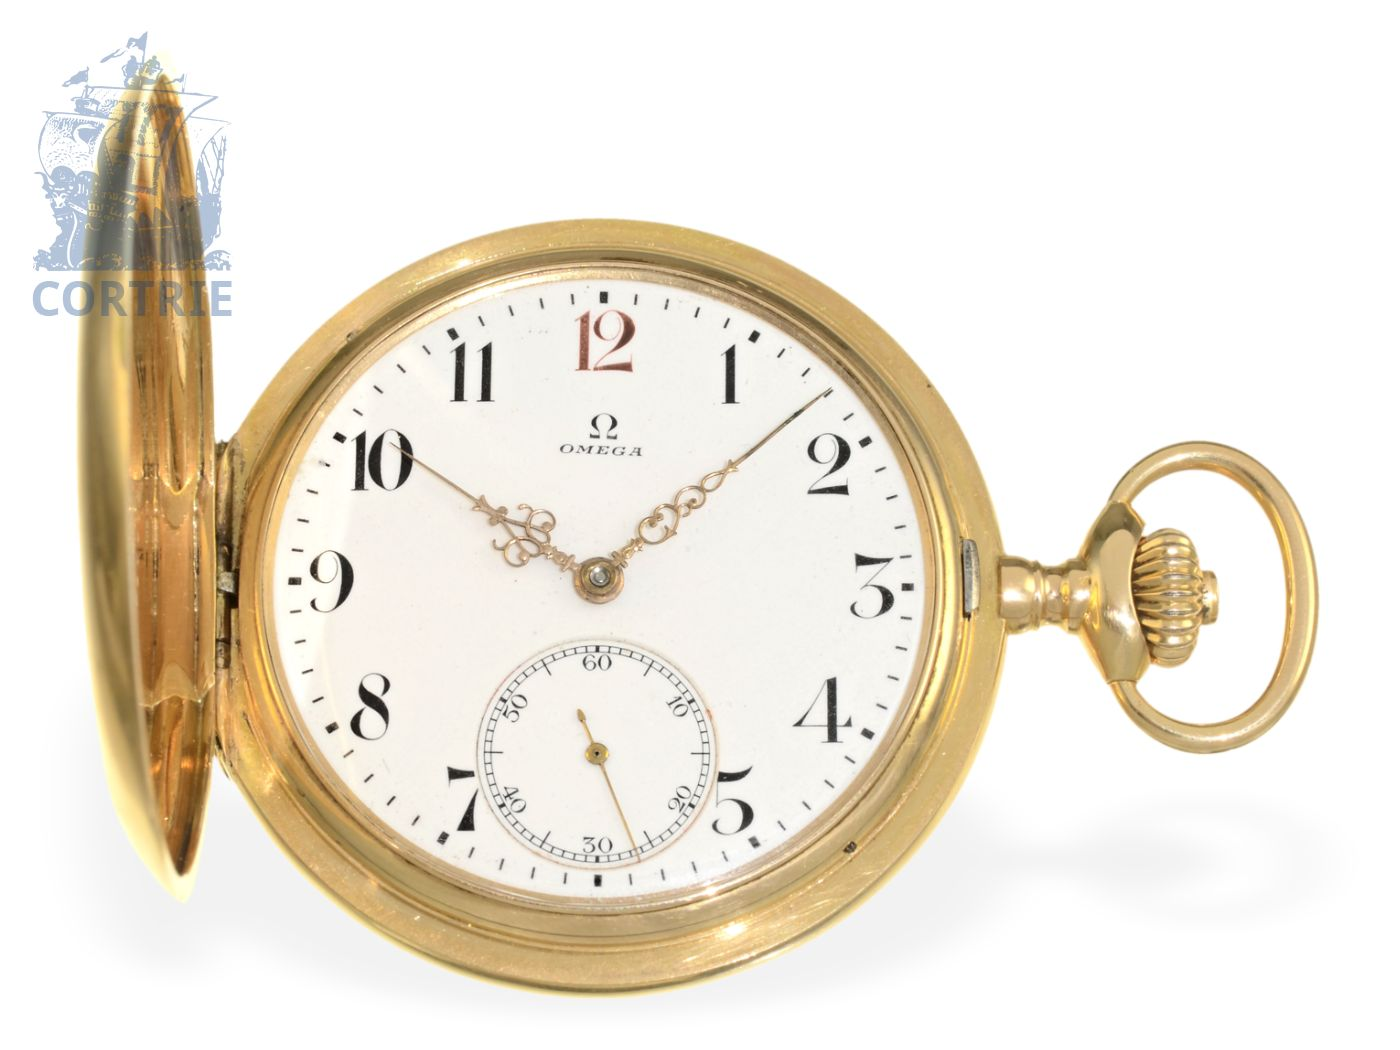 Pocket watch: heavy 18K pink gold hunting case watch by Omega, from nobleman's possession, ca. 1915-